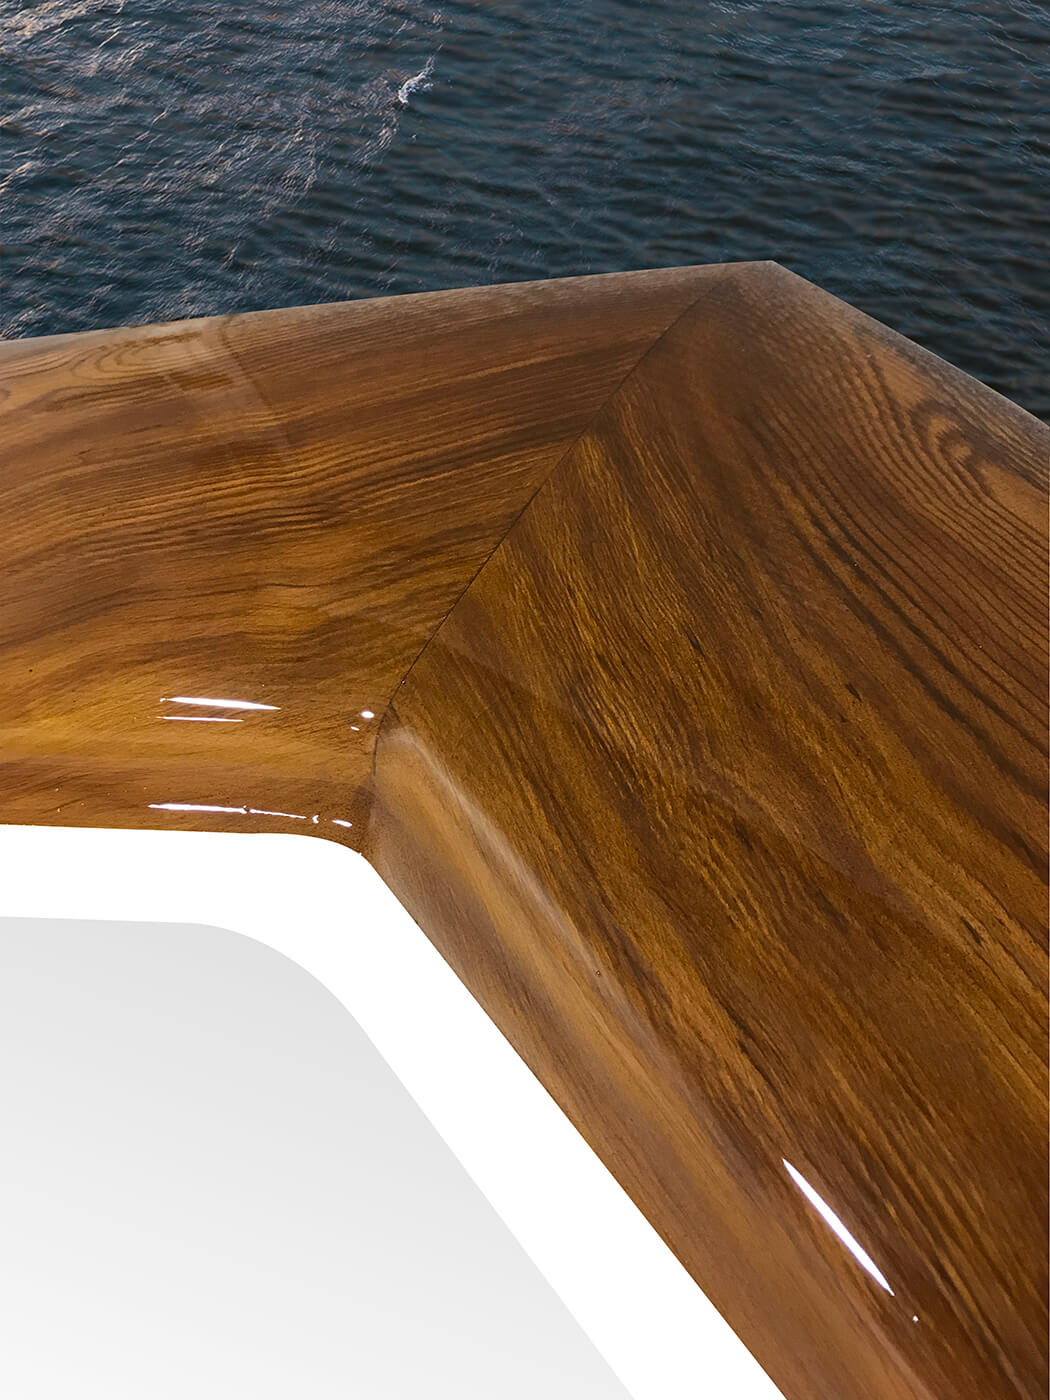 Shearline Boatworks Morehead City North Carolina Faux Teak